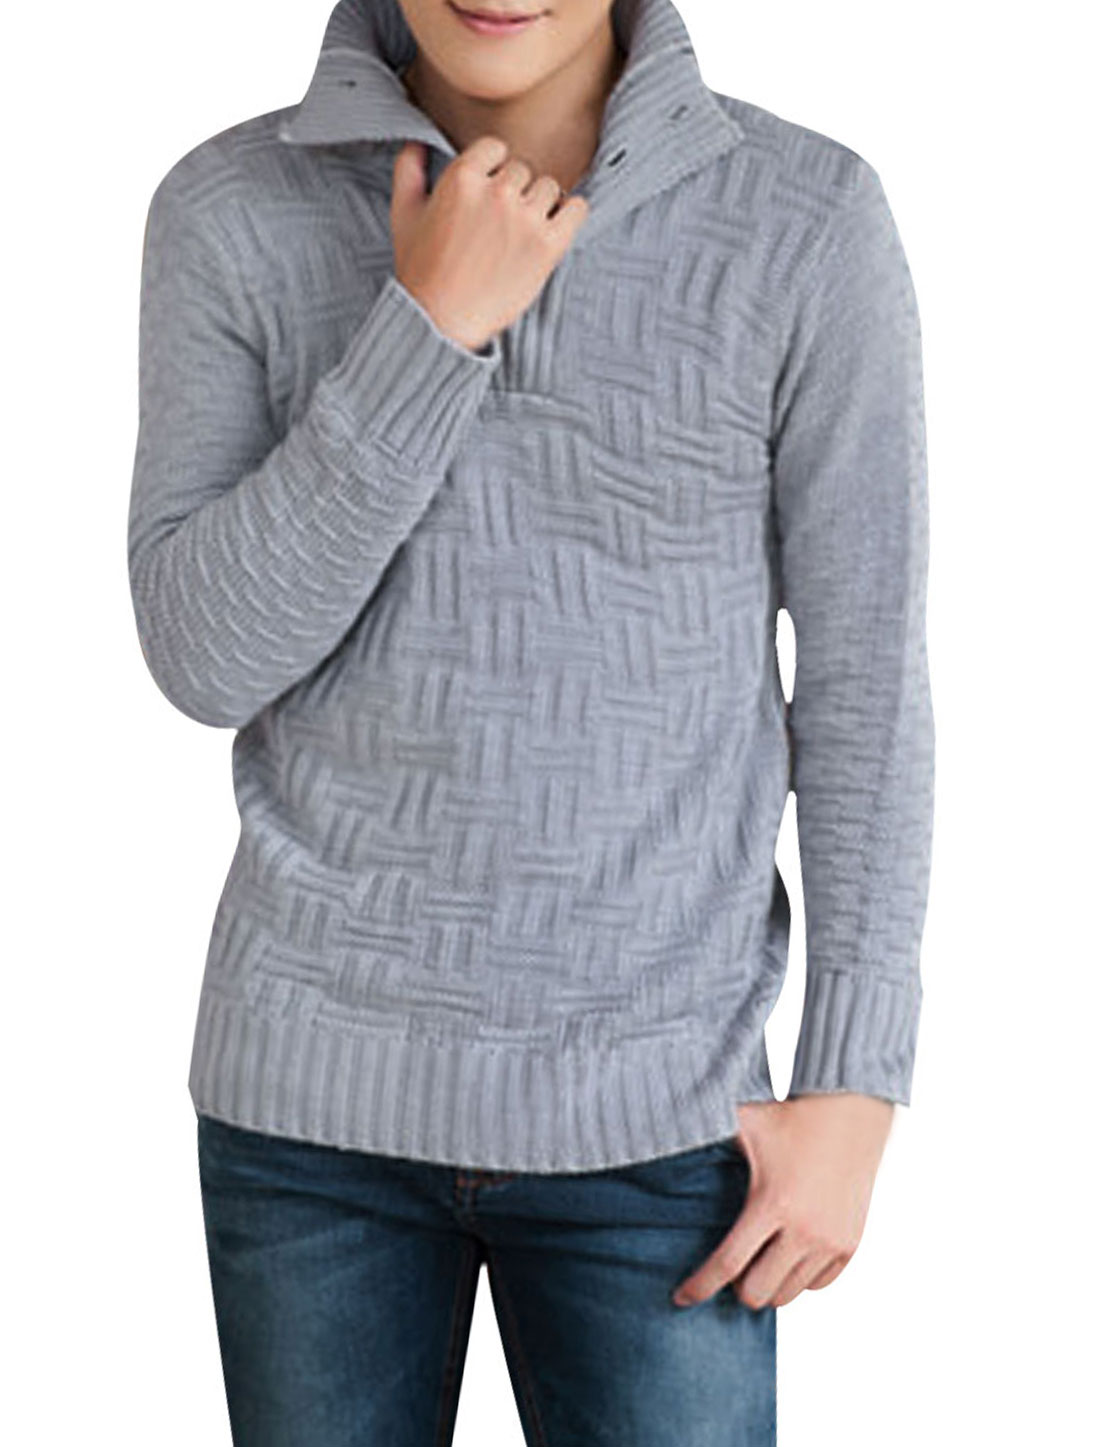 Men Light Gray Convertible Collar Five Buttons Front Pullover Sweater S